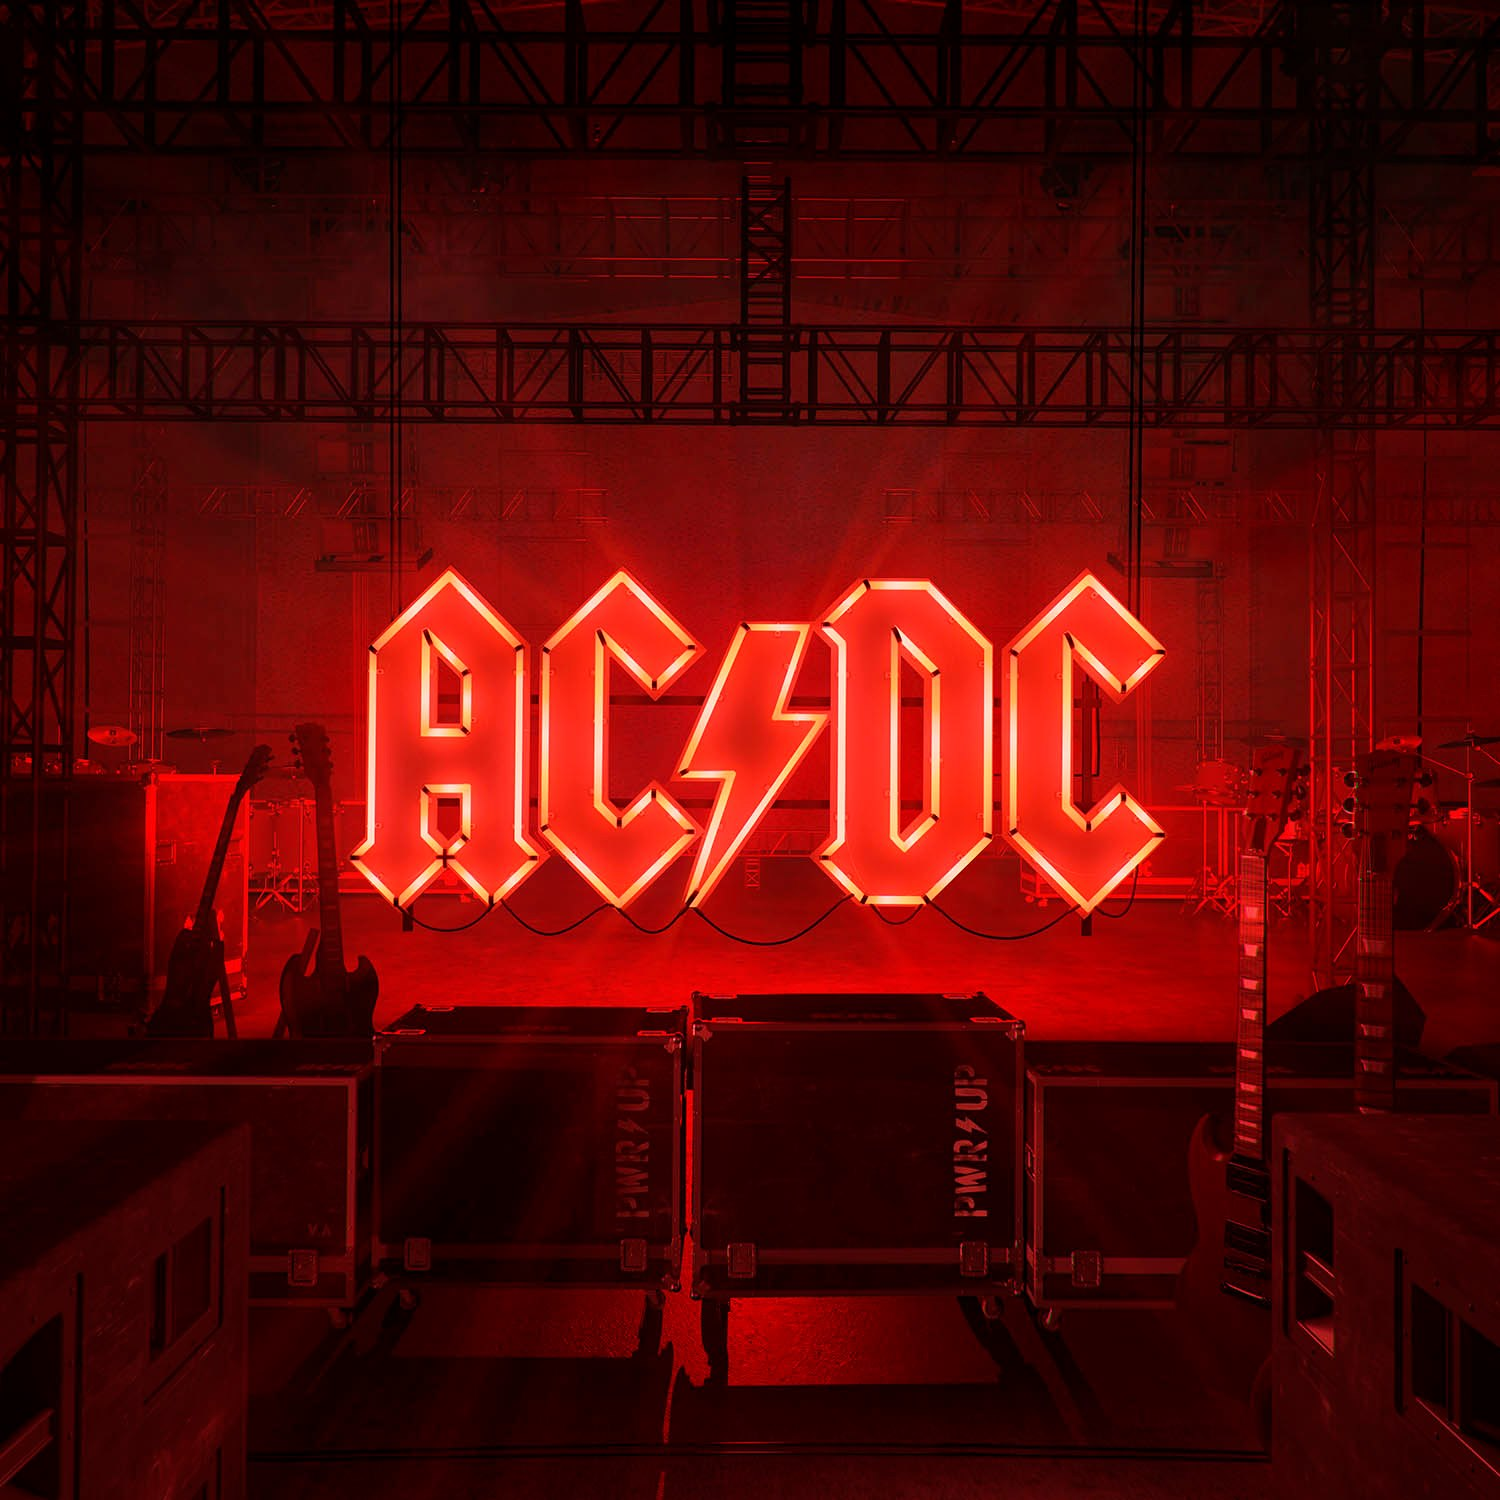 acdc power up pic 1